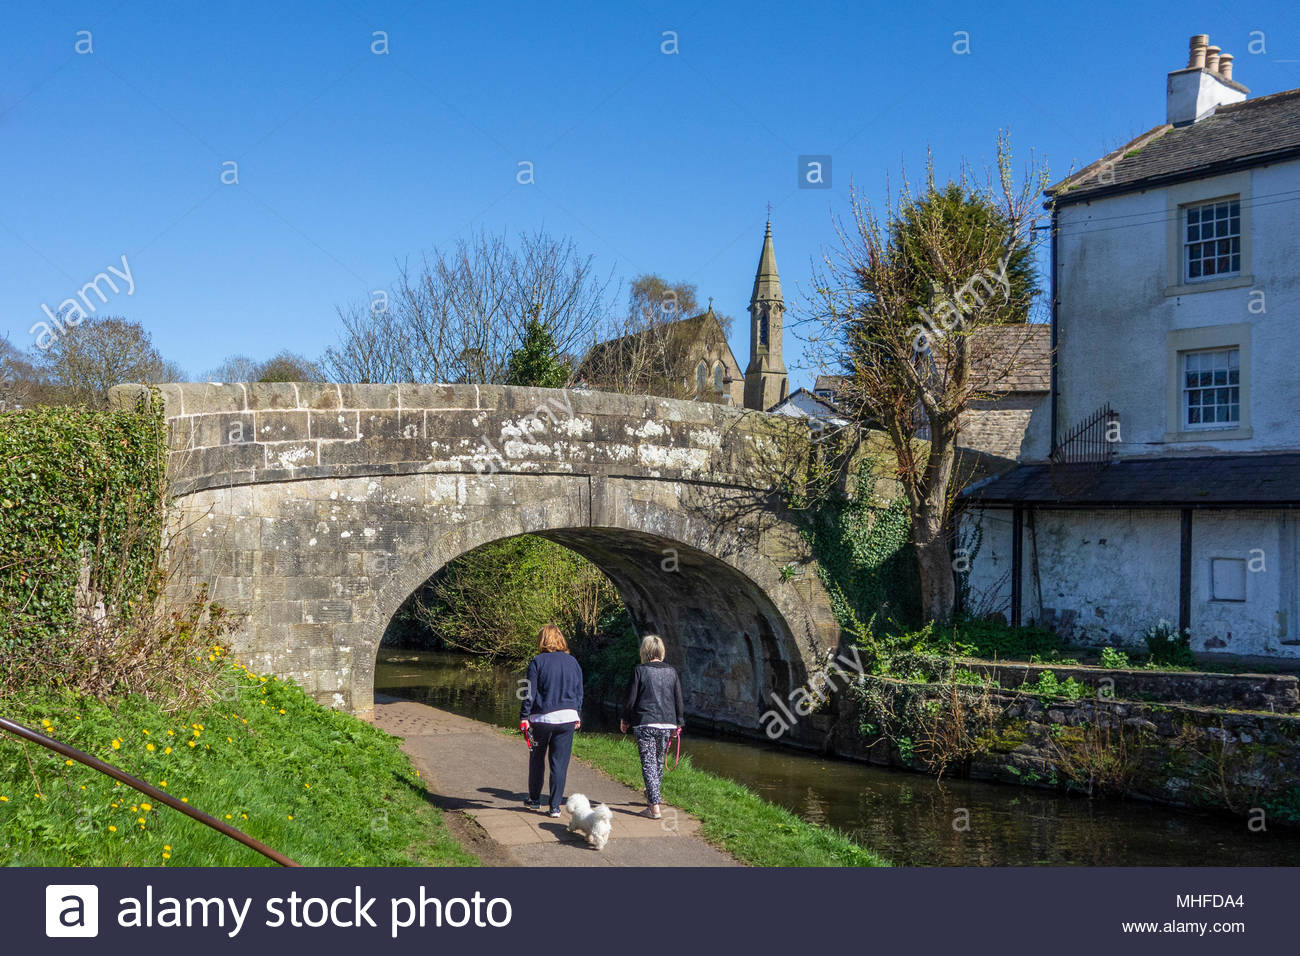 A sunny day on the Lancaster Canal towpath at Bolton le Sands, Lancashire, UK - Stock Image